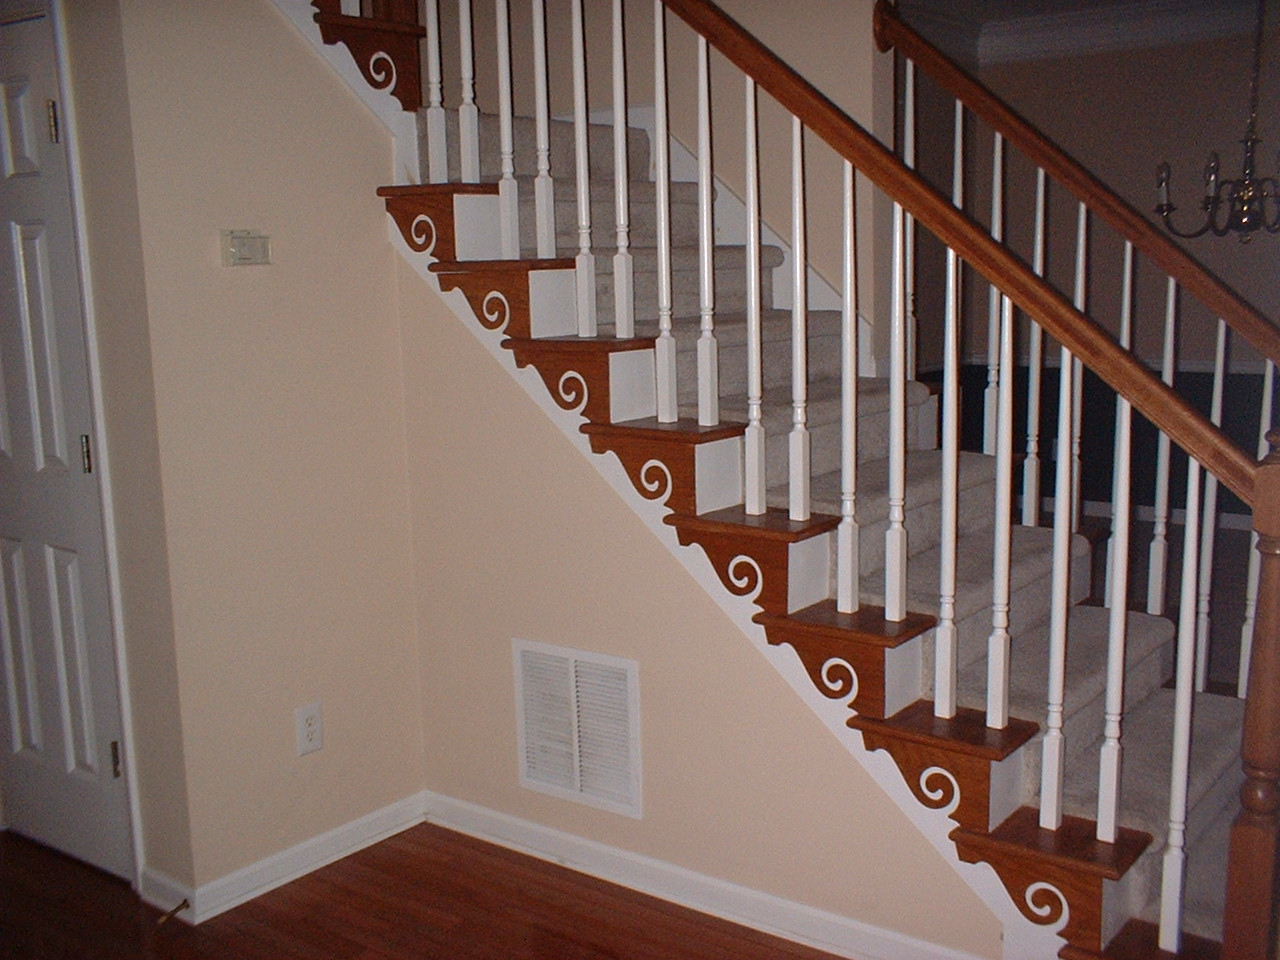 Staircase decorating ideas dream house experience Design ideas for hallways and stairs